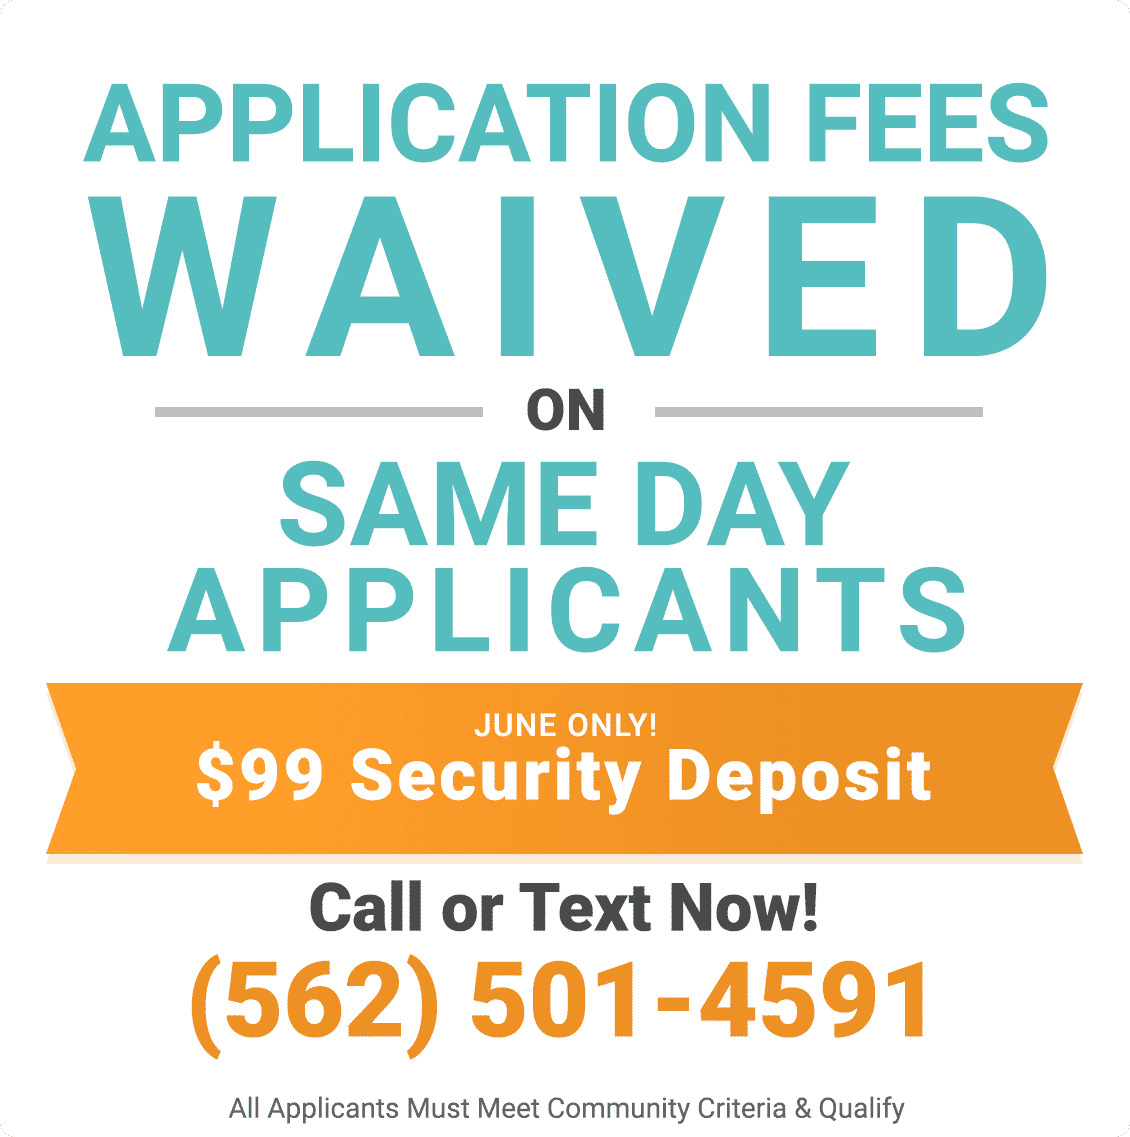 Application Fees Waived on Same Day Applicants